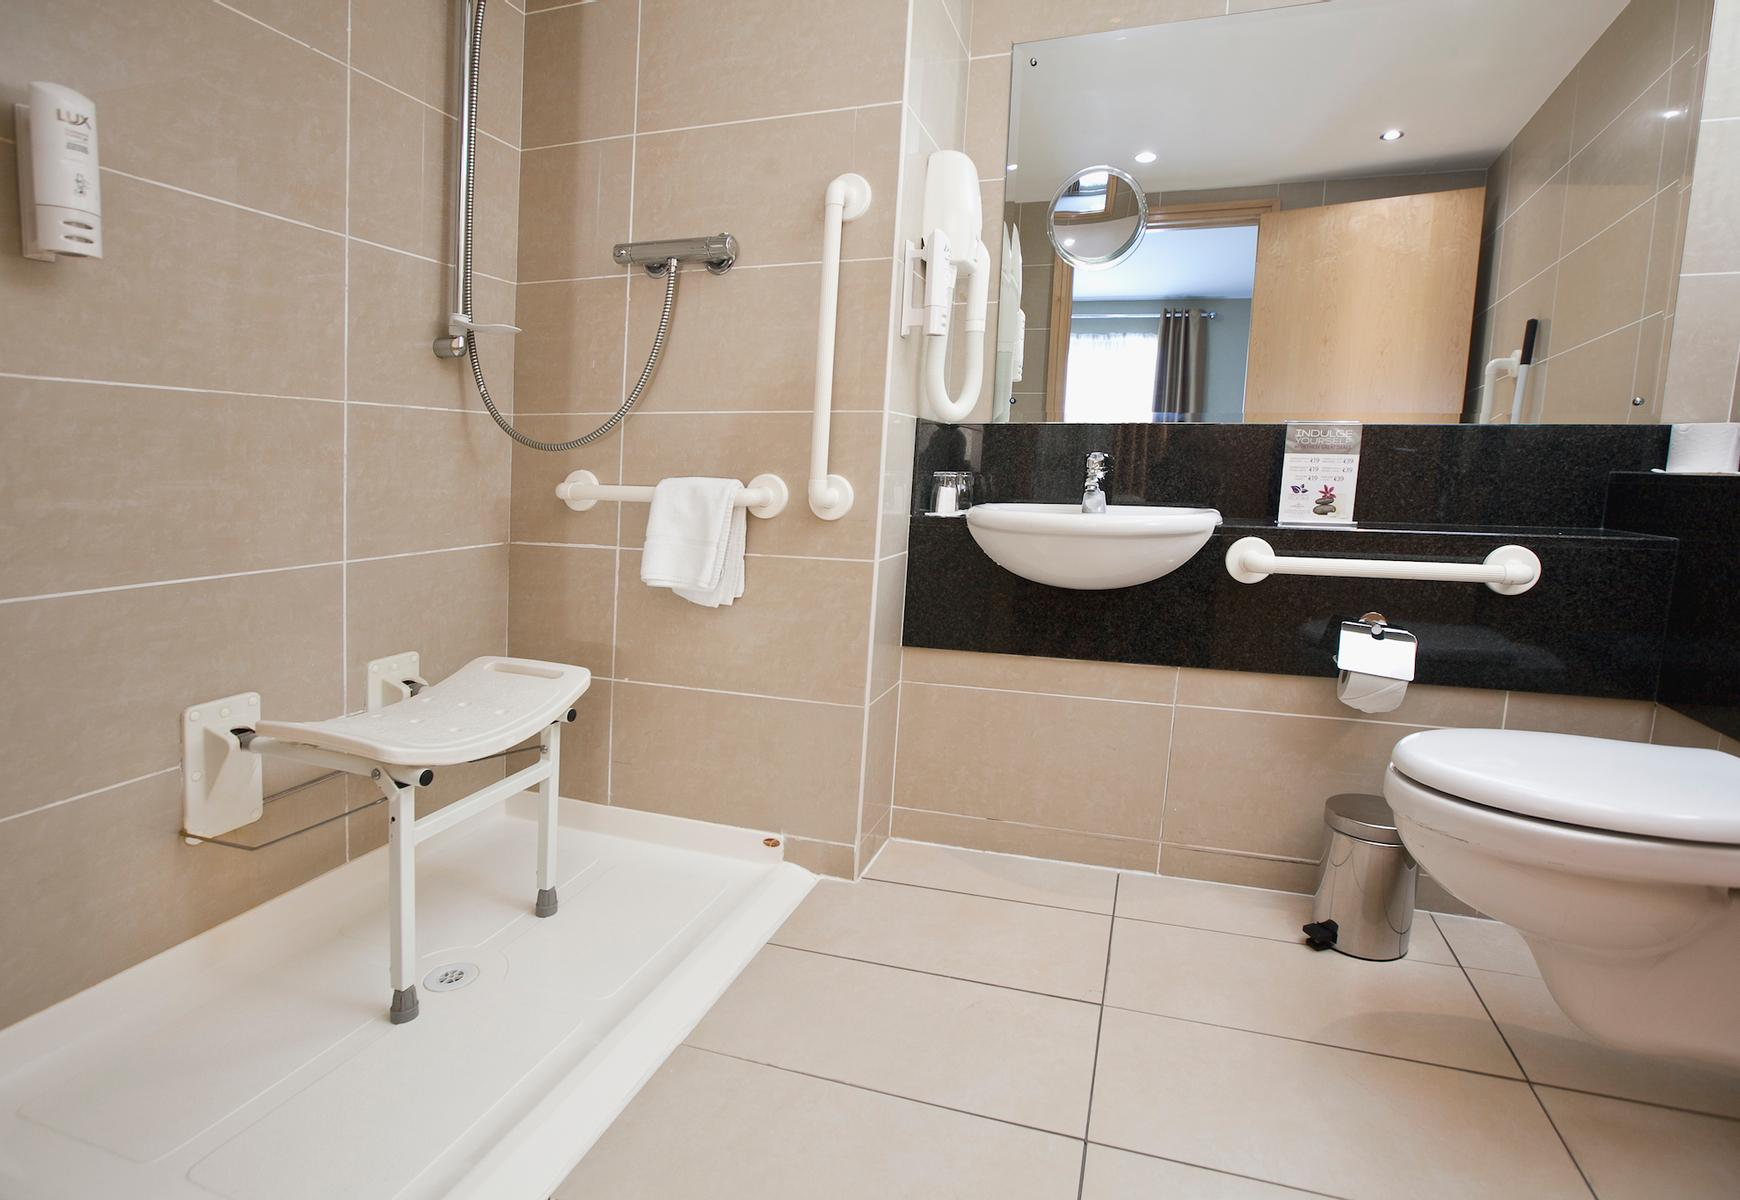 Academy Plaza Hotel | Dublin | Wheelchair friendly rooms with roll in showers